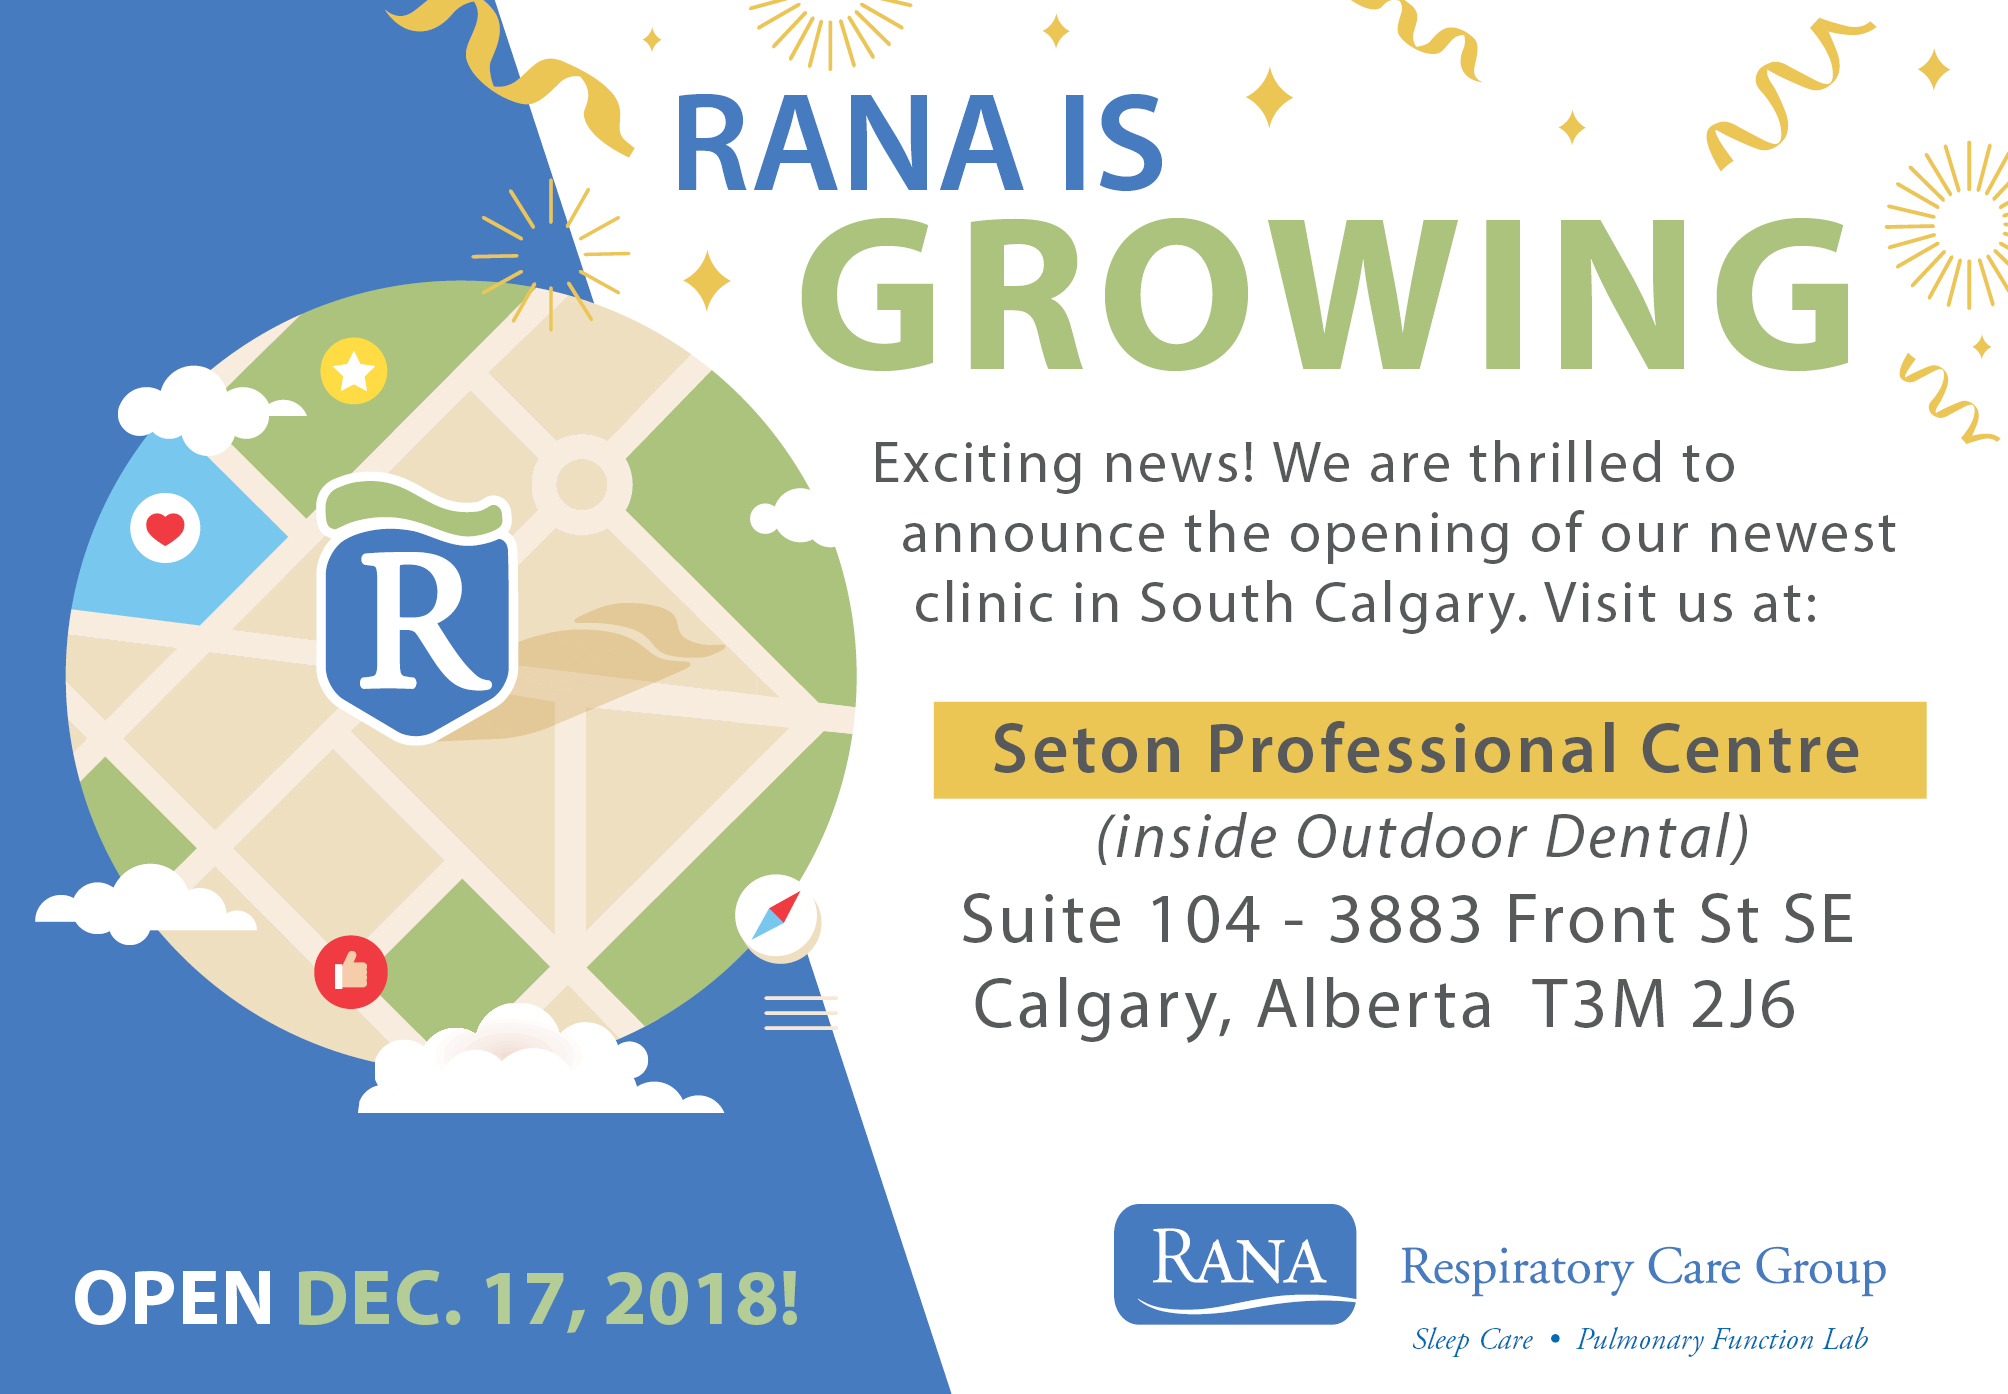 New RANA location now open in South Calgary!